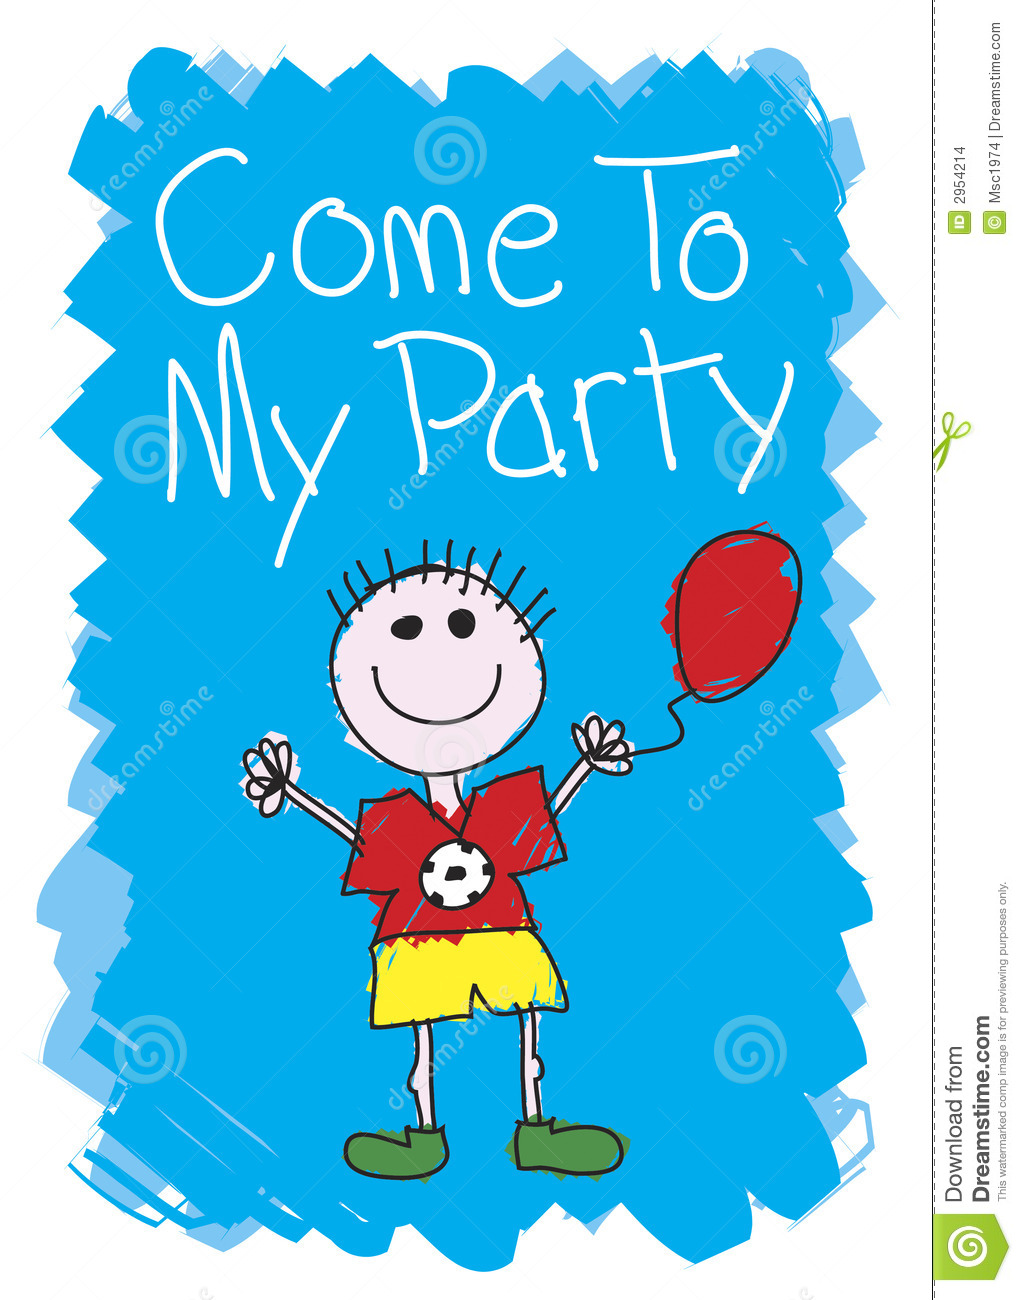 Come To My Party - Boy Stock Images - Image: 2954214